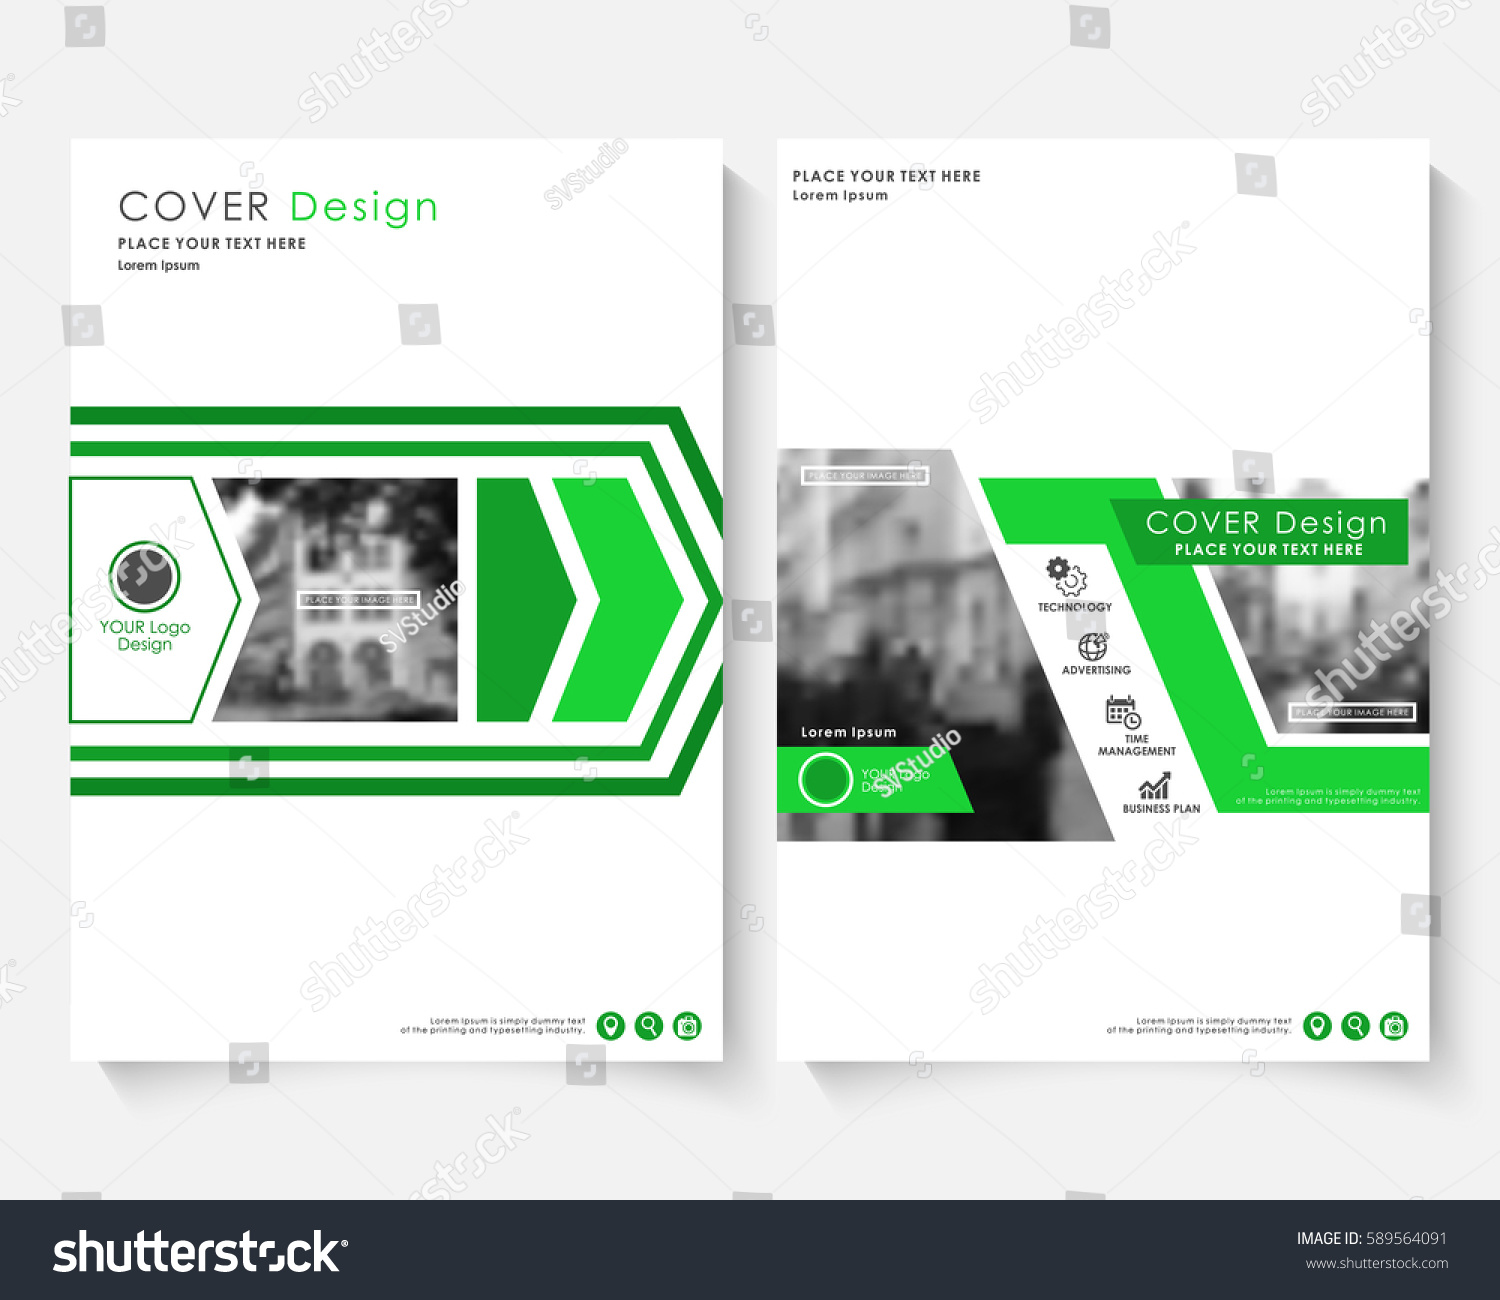 Green marketing cover design template annual stock vector green marketing cover design template for annual report modern minimalist business powerpoint concept booklet alramifo Gallery